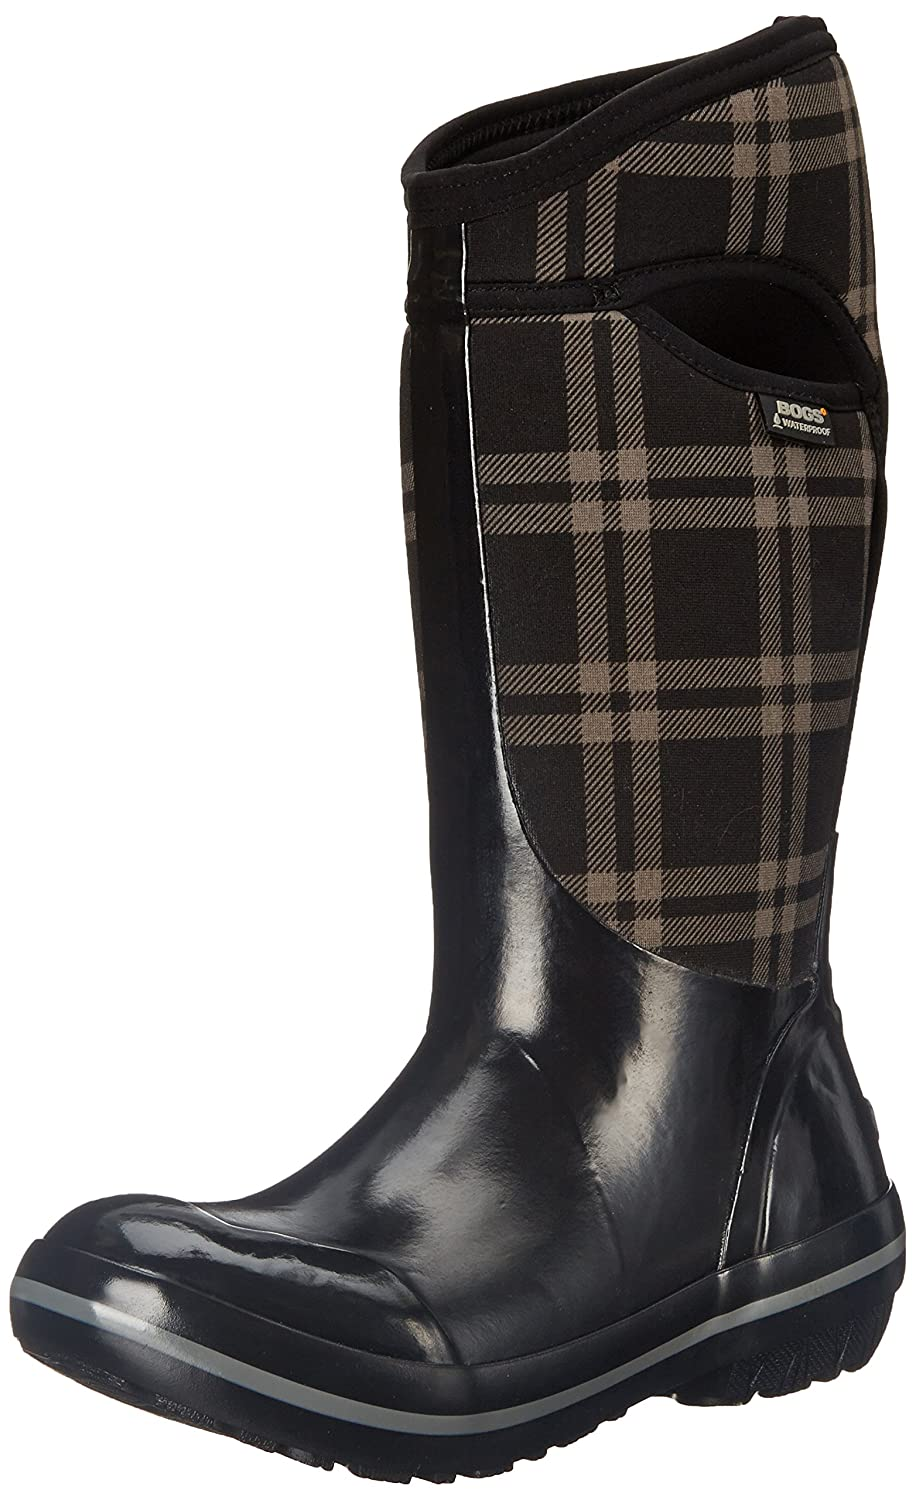 Bogs Women's Plimsoll Plaid Tall Winter Snow Boot B00QMME5UQ 6 B(M) US|Black